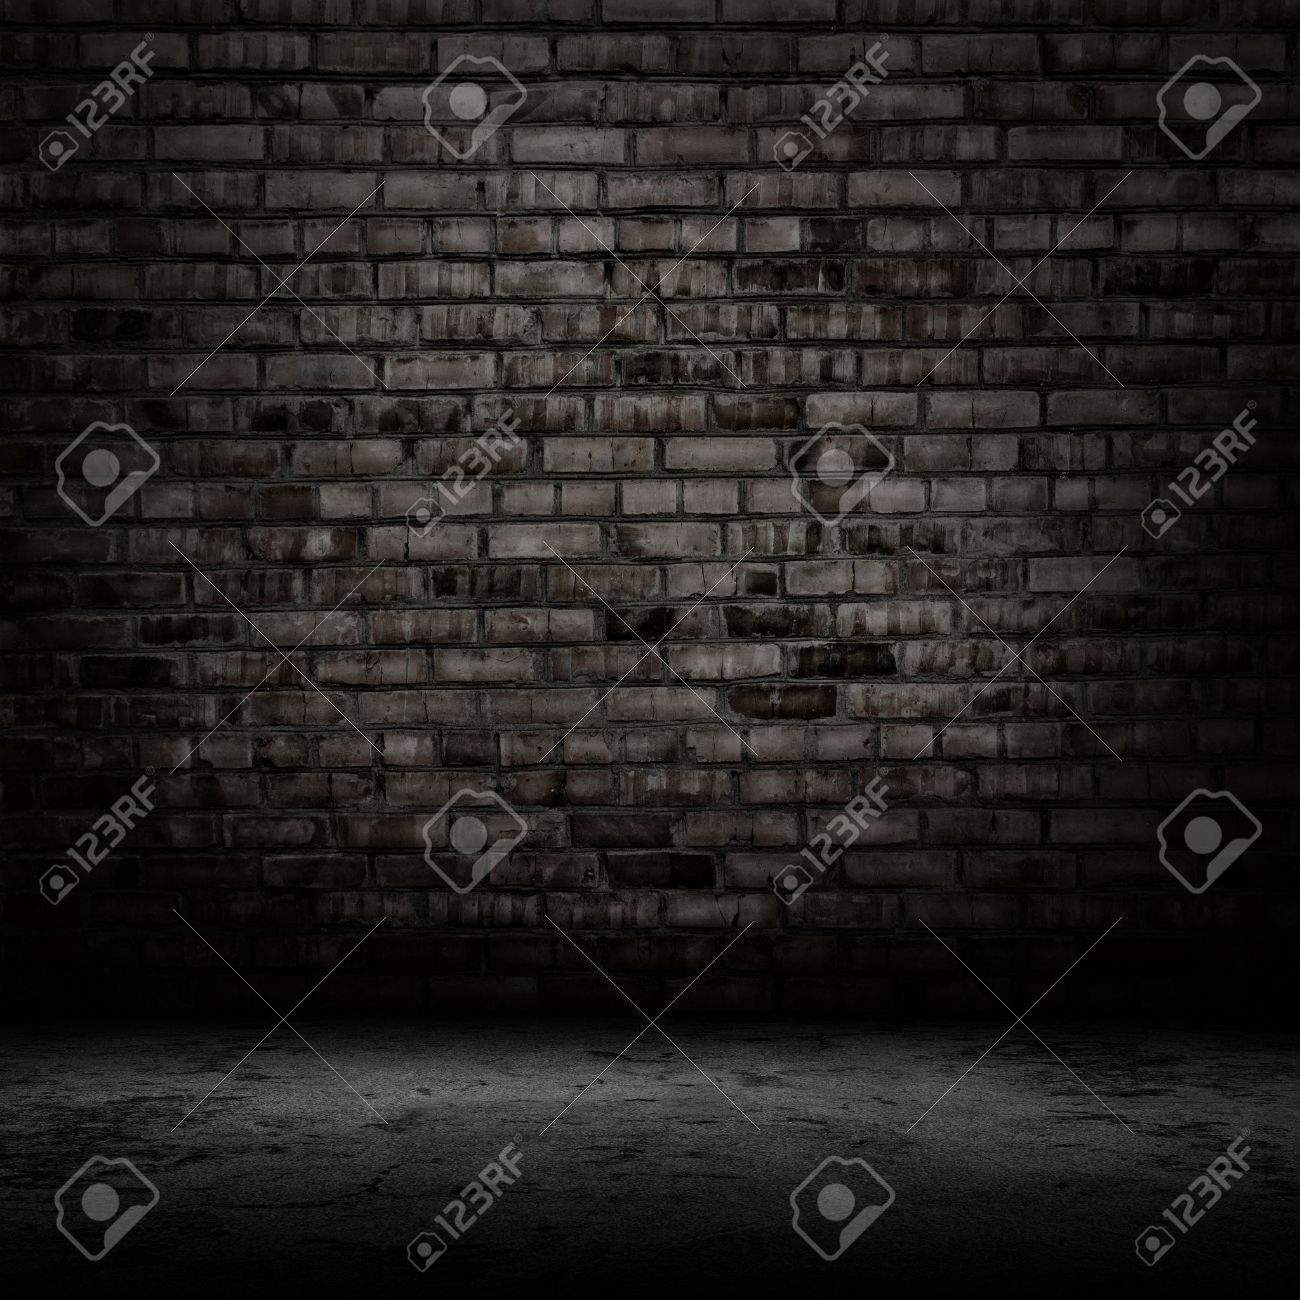 Dark room with tile floor and brick wall background stock photo dark room with tile floor and brick wall background stock photo 35479662 dailygadgetfo Choice Image